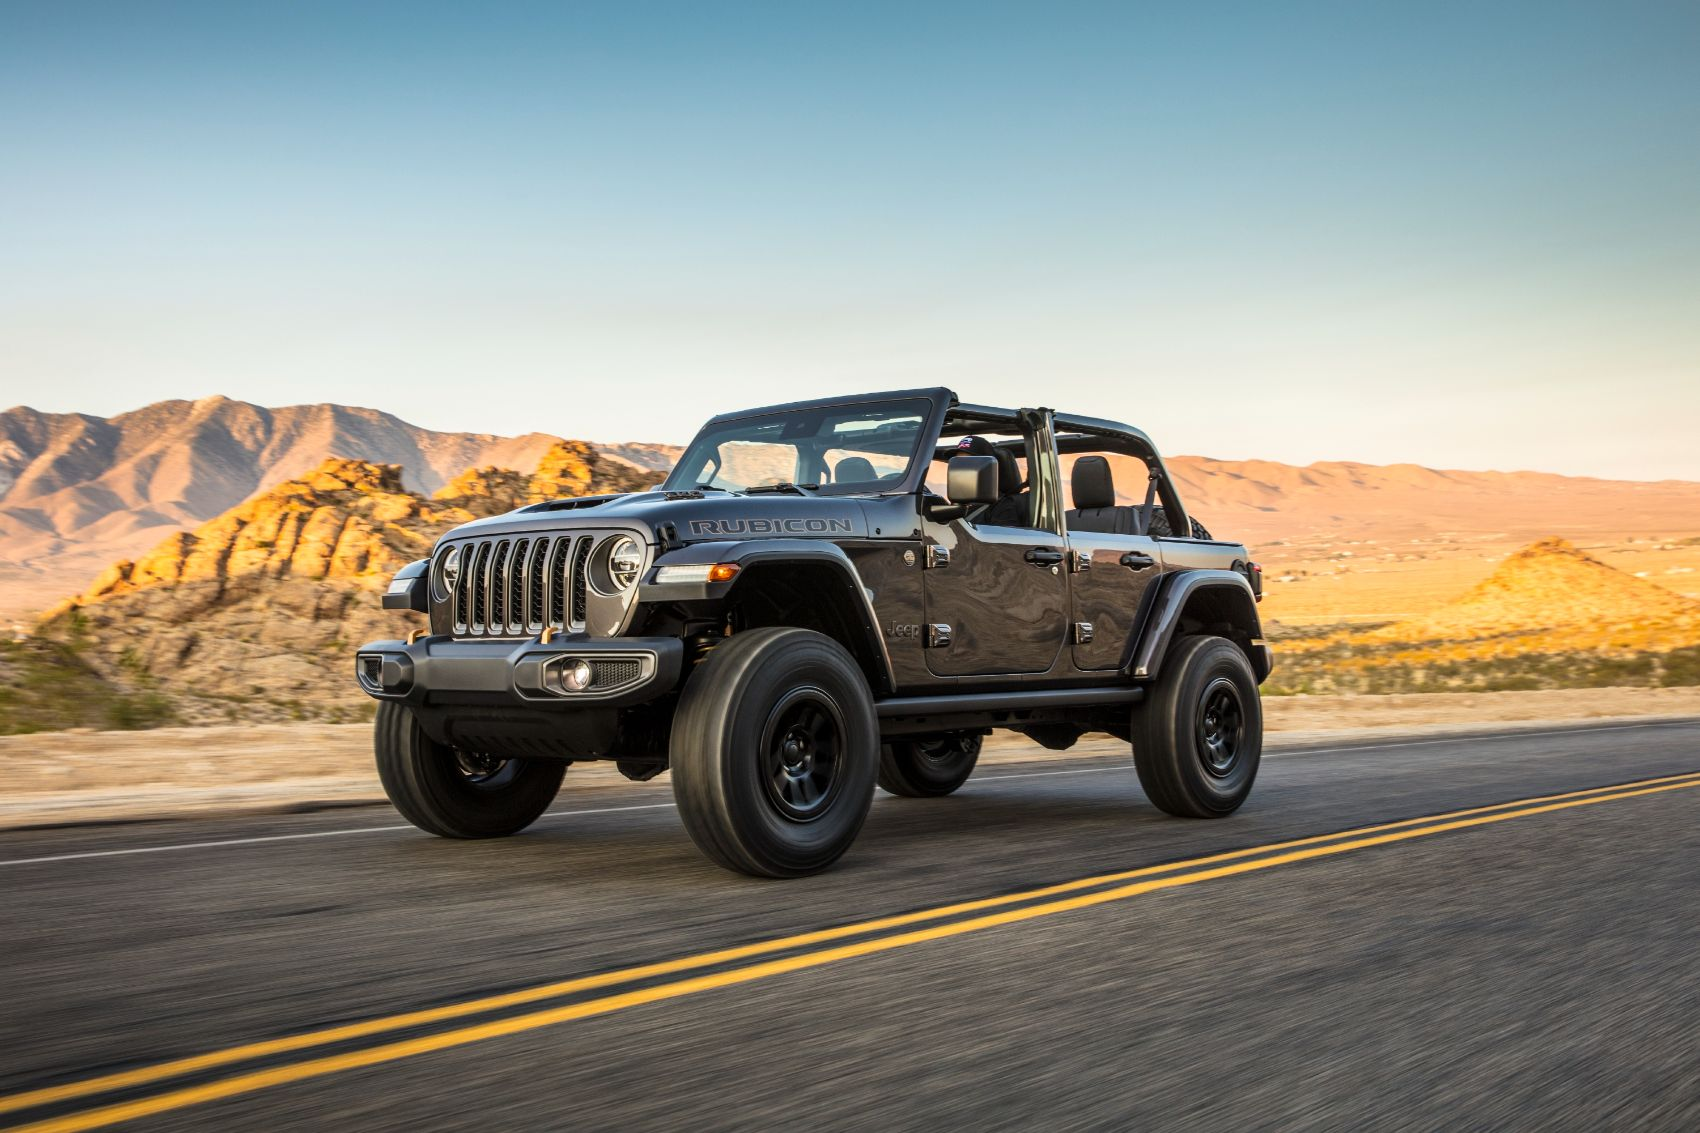 2021 Jeep Wrangler Rubicon 392: Big Hemi Wrangler Reports for Off-Road Duty